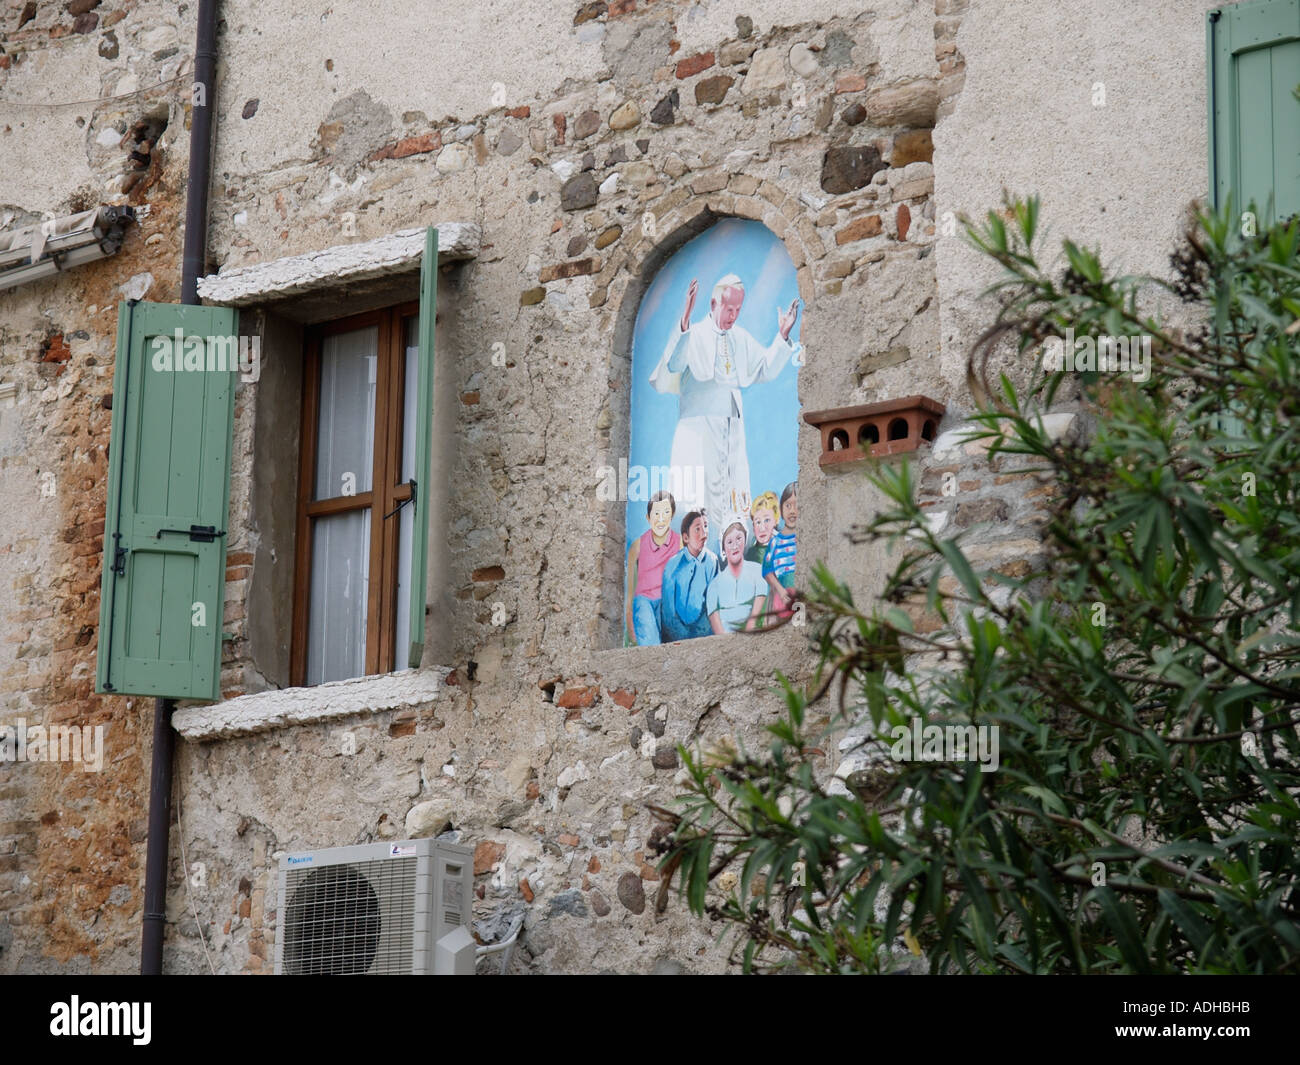 Portrait image of pope John Paul II with children on an old house in Sirmione Italy - Stock Image